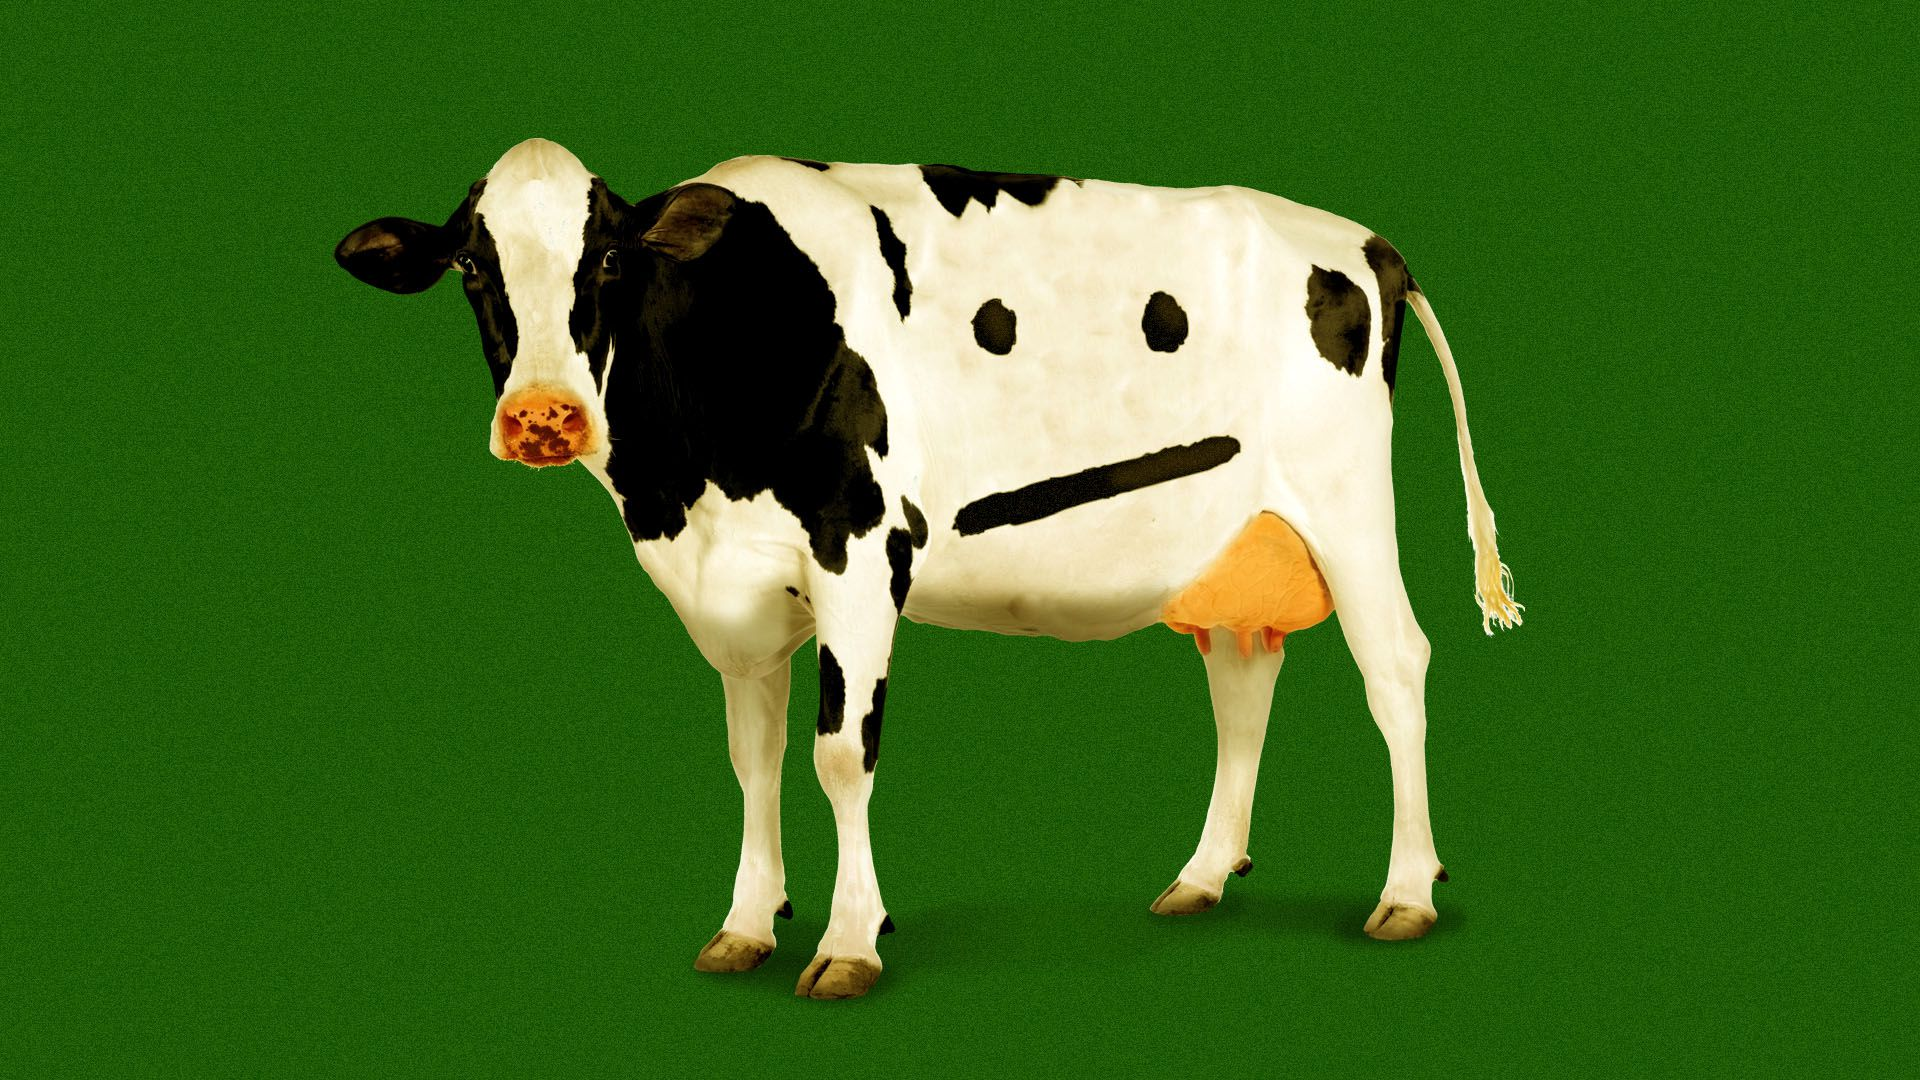 Illustration of a cow with markings in the shape of a neutral face.